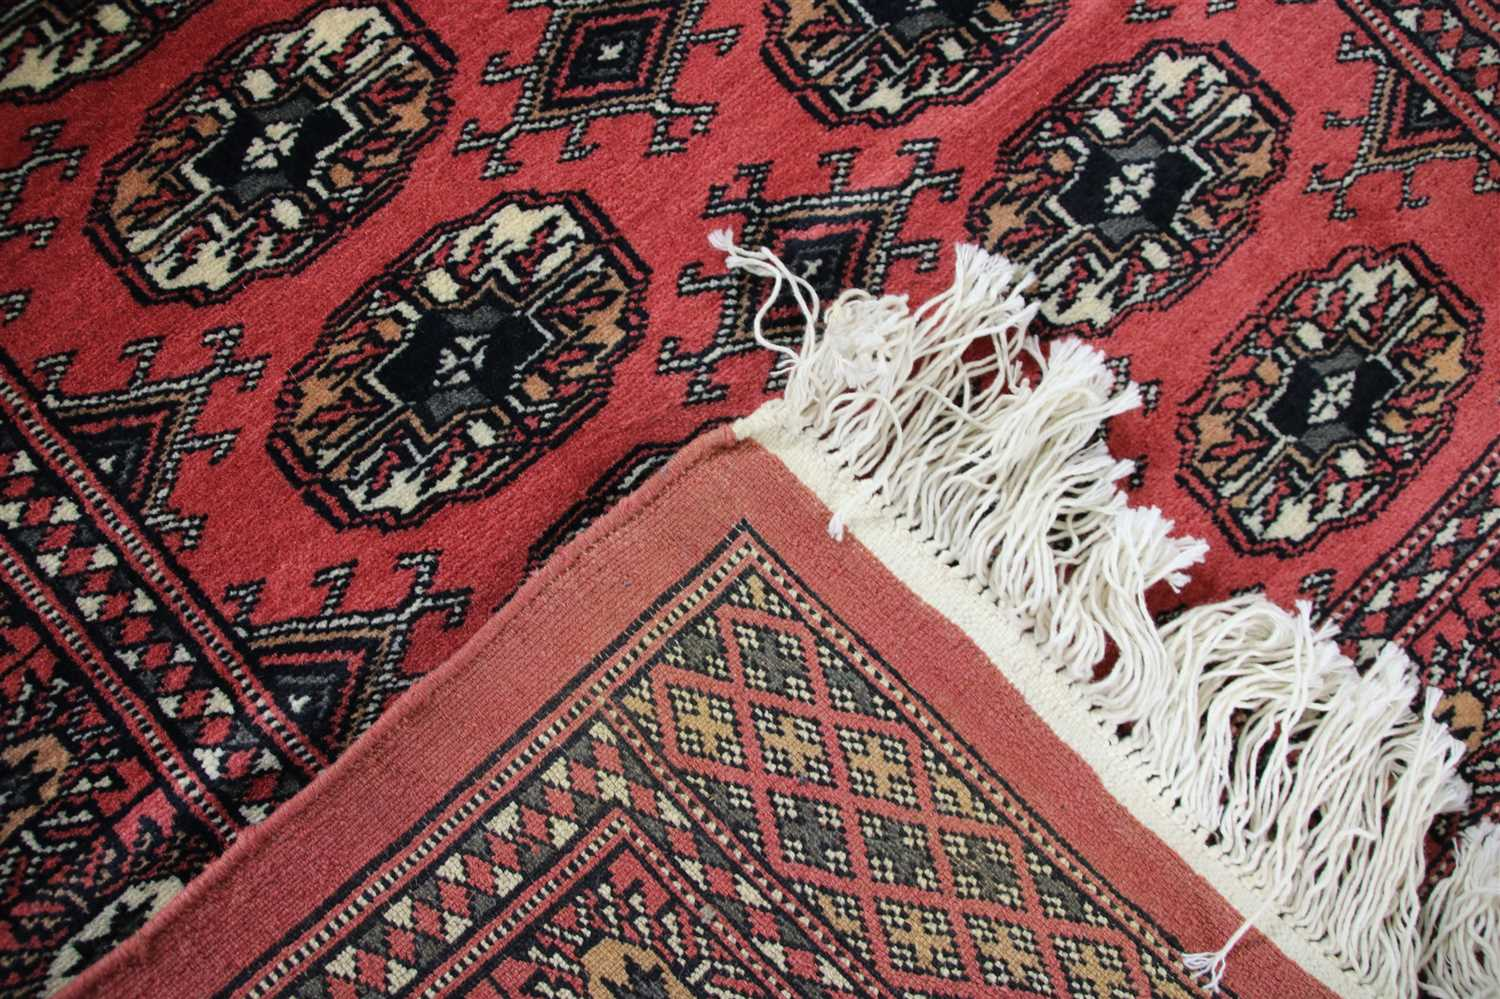 Lot 728 - A hand knotted Belouch rug